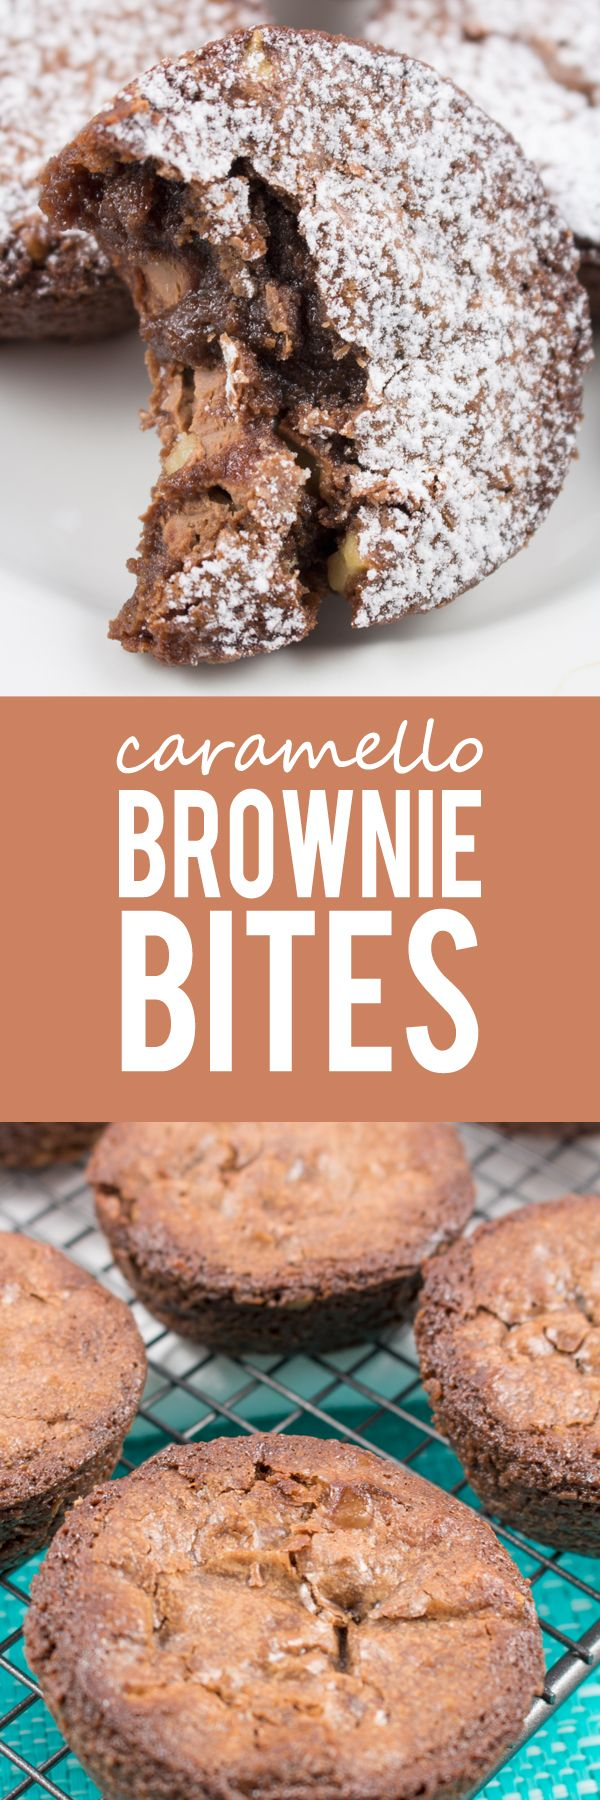 Caramello Brownie Bites - Chewy caramelized crust with gooey caramello chocolate center! Crazy good!! This brownie will change your life.